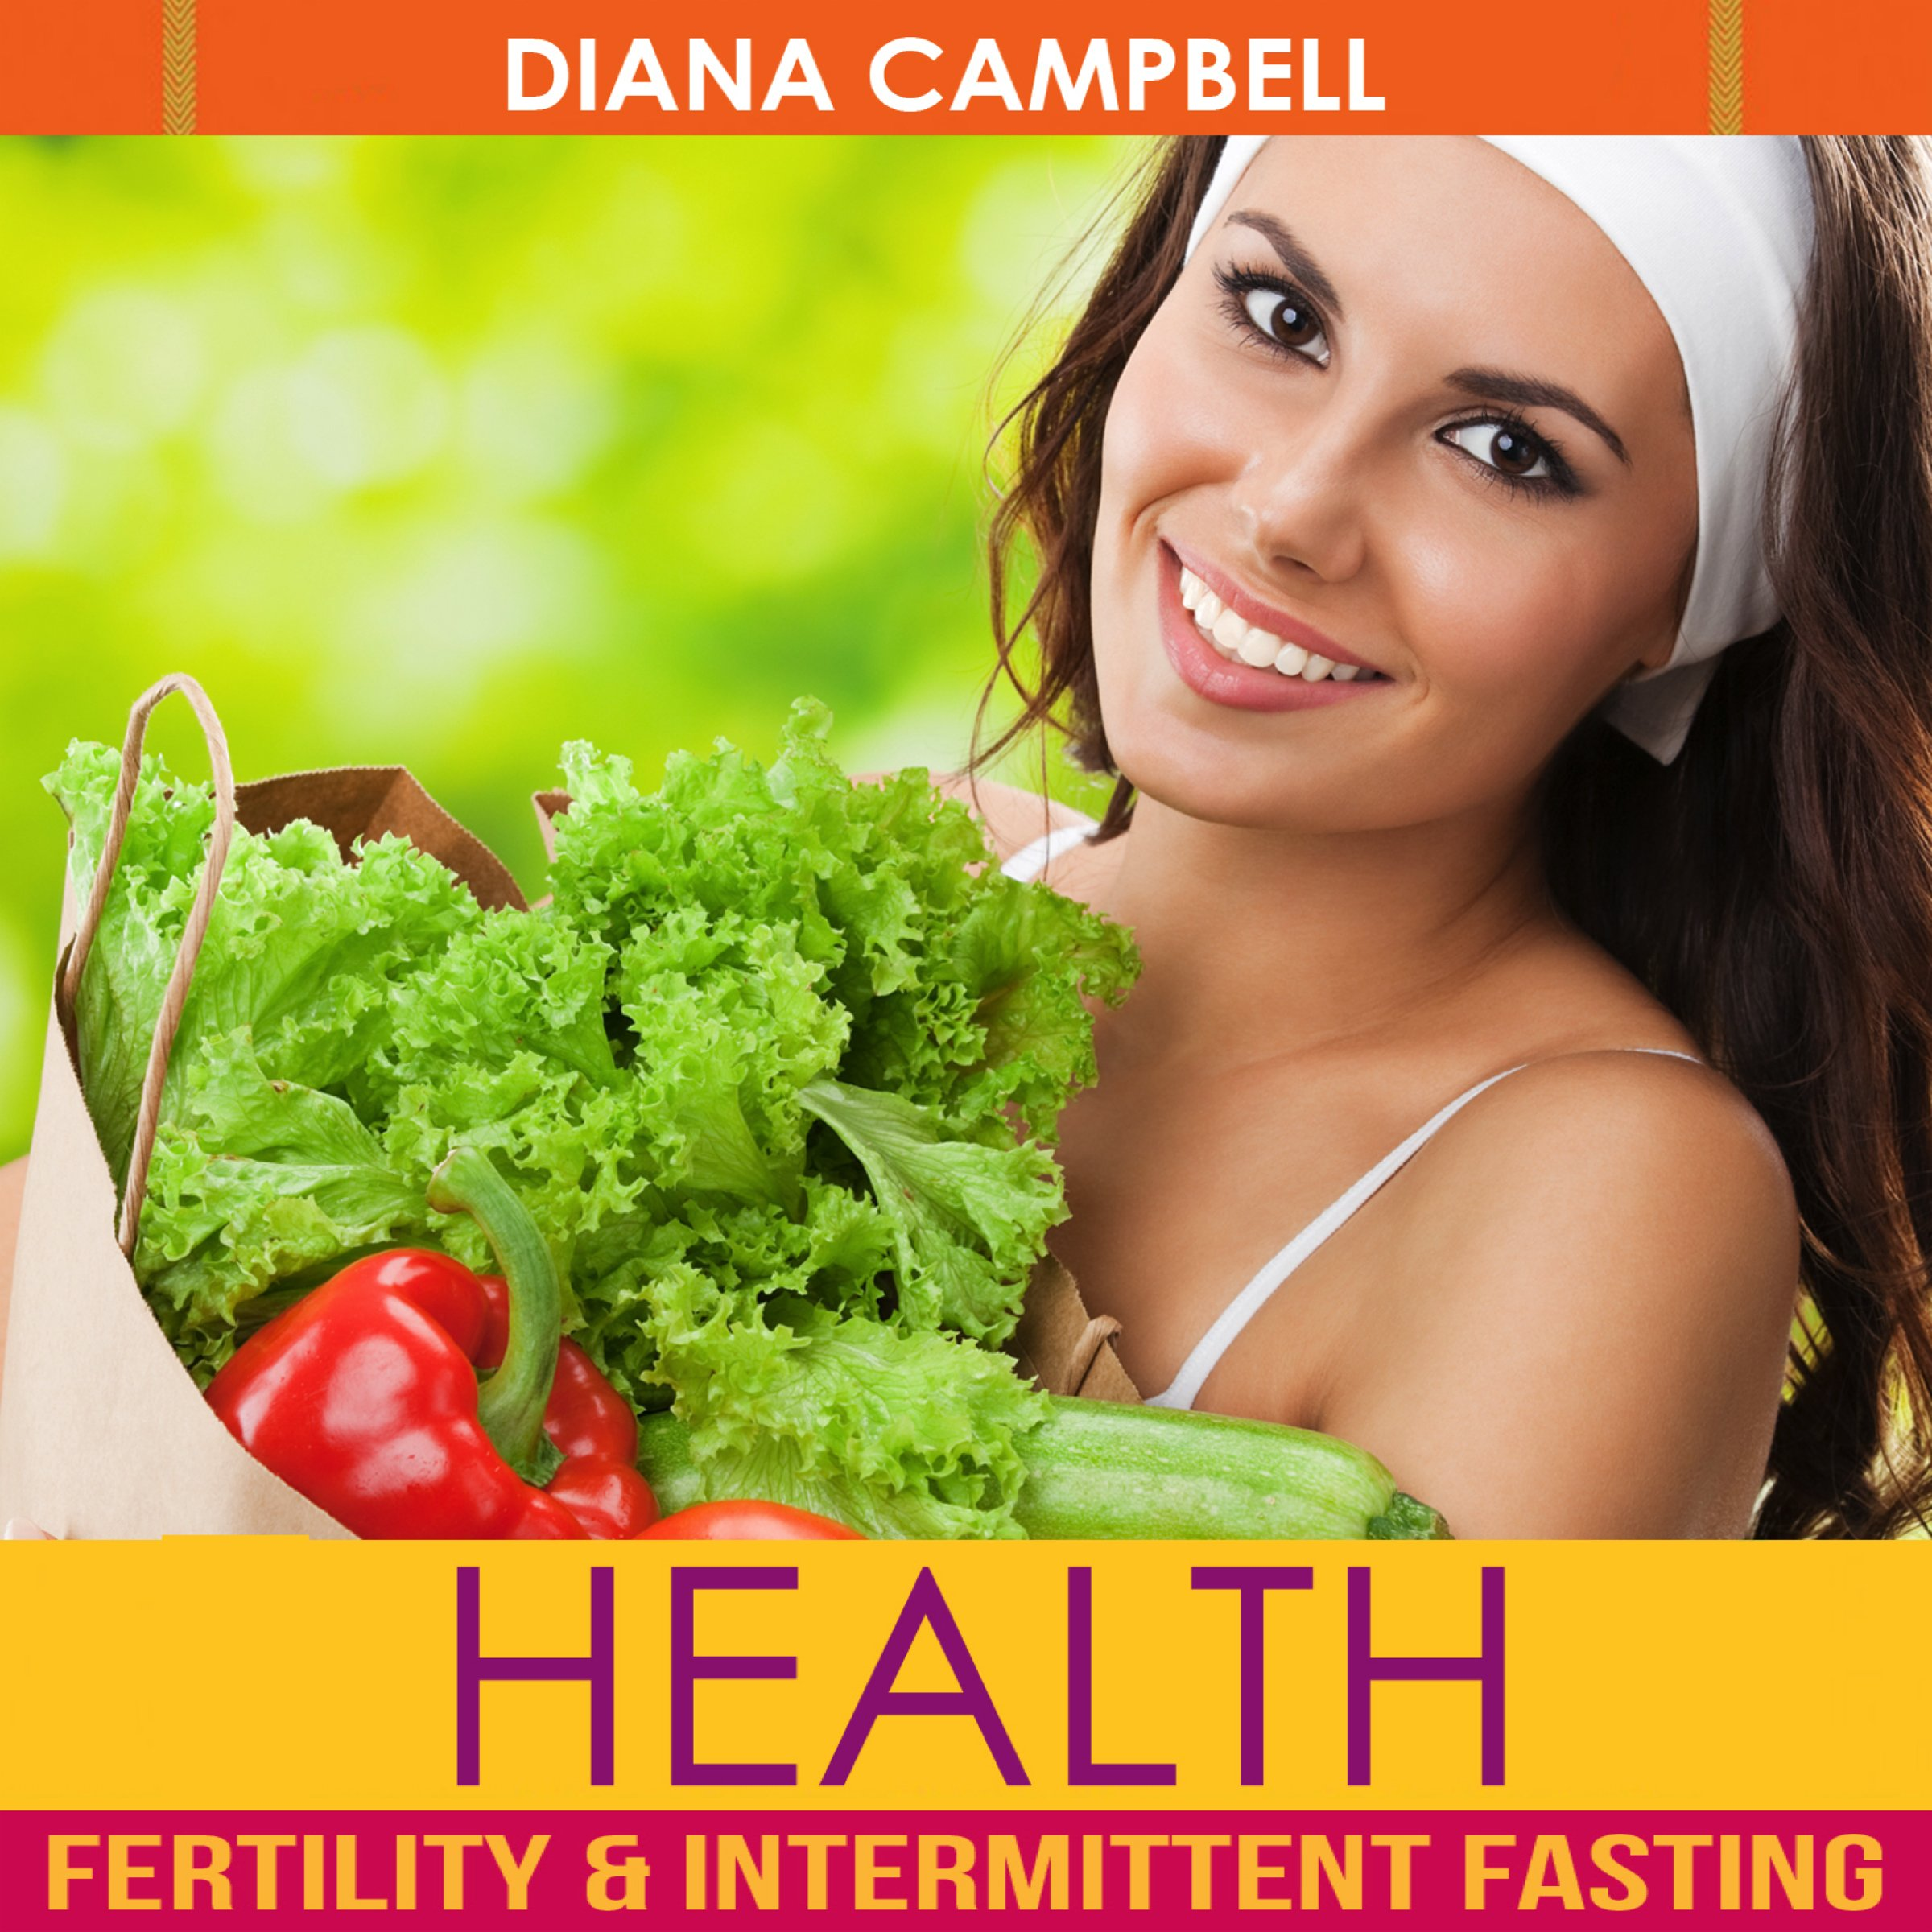 Image OfHealth, Bundle 1: Fertility, Intermittent Fasting